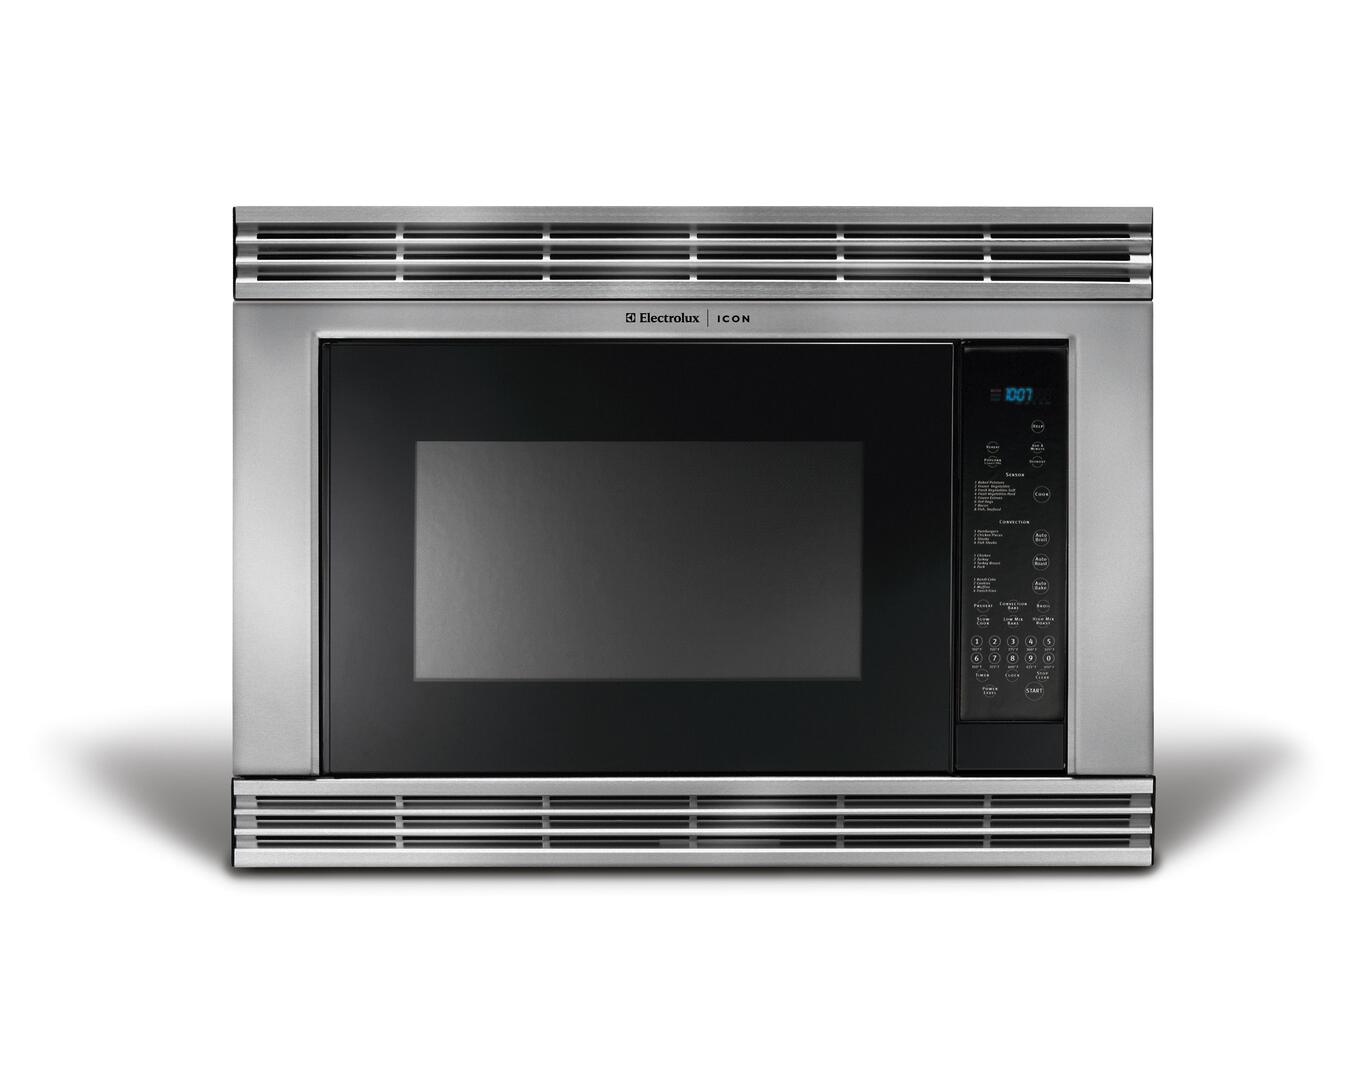 hight resolution of electrolux icon designer front view